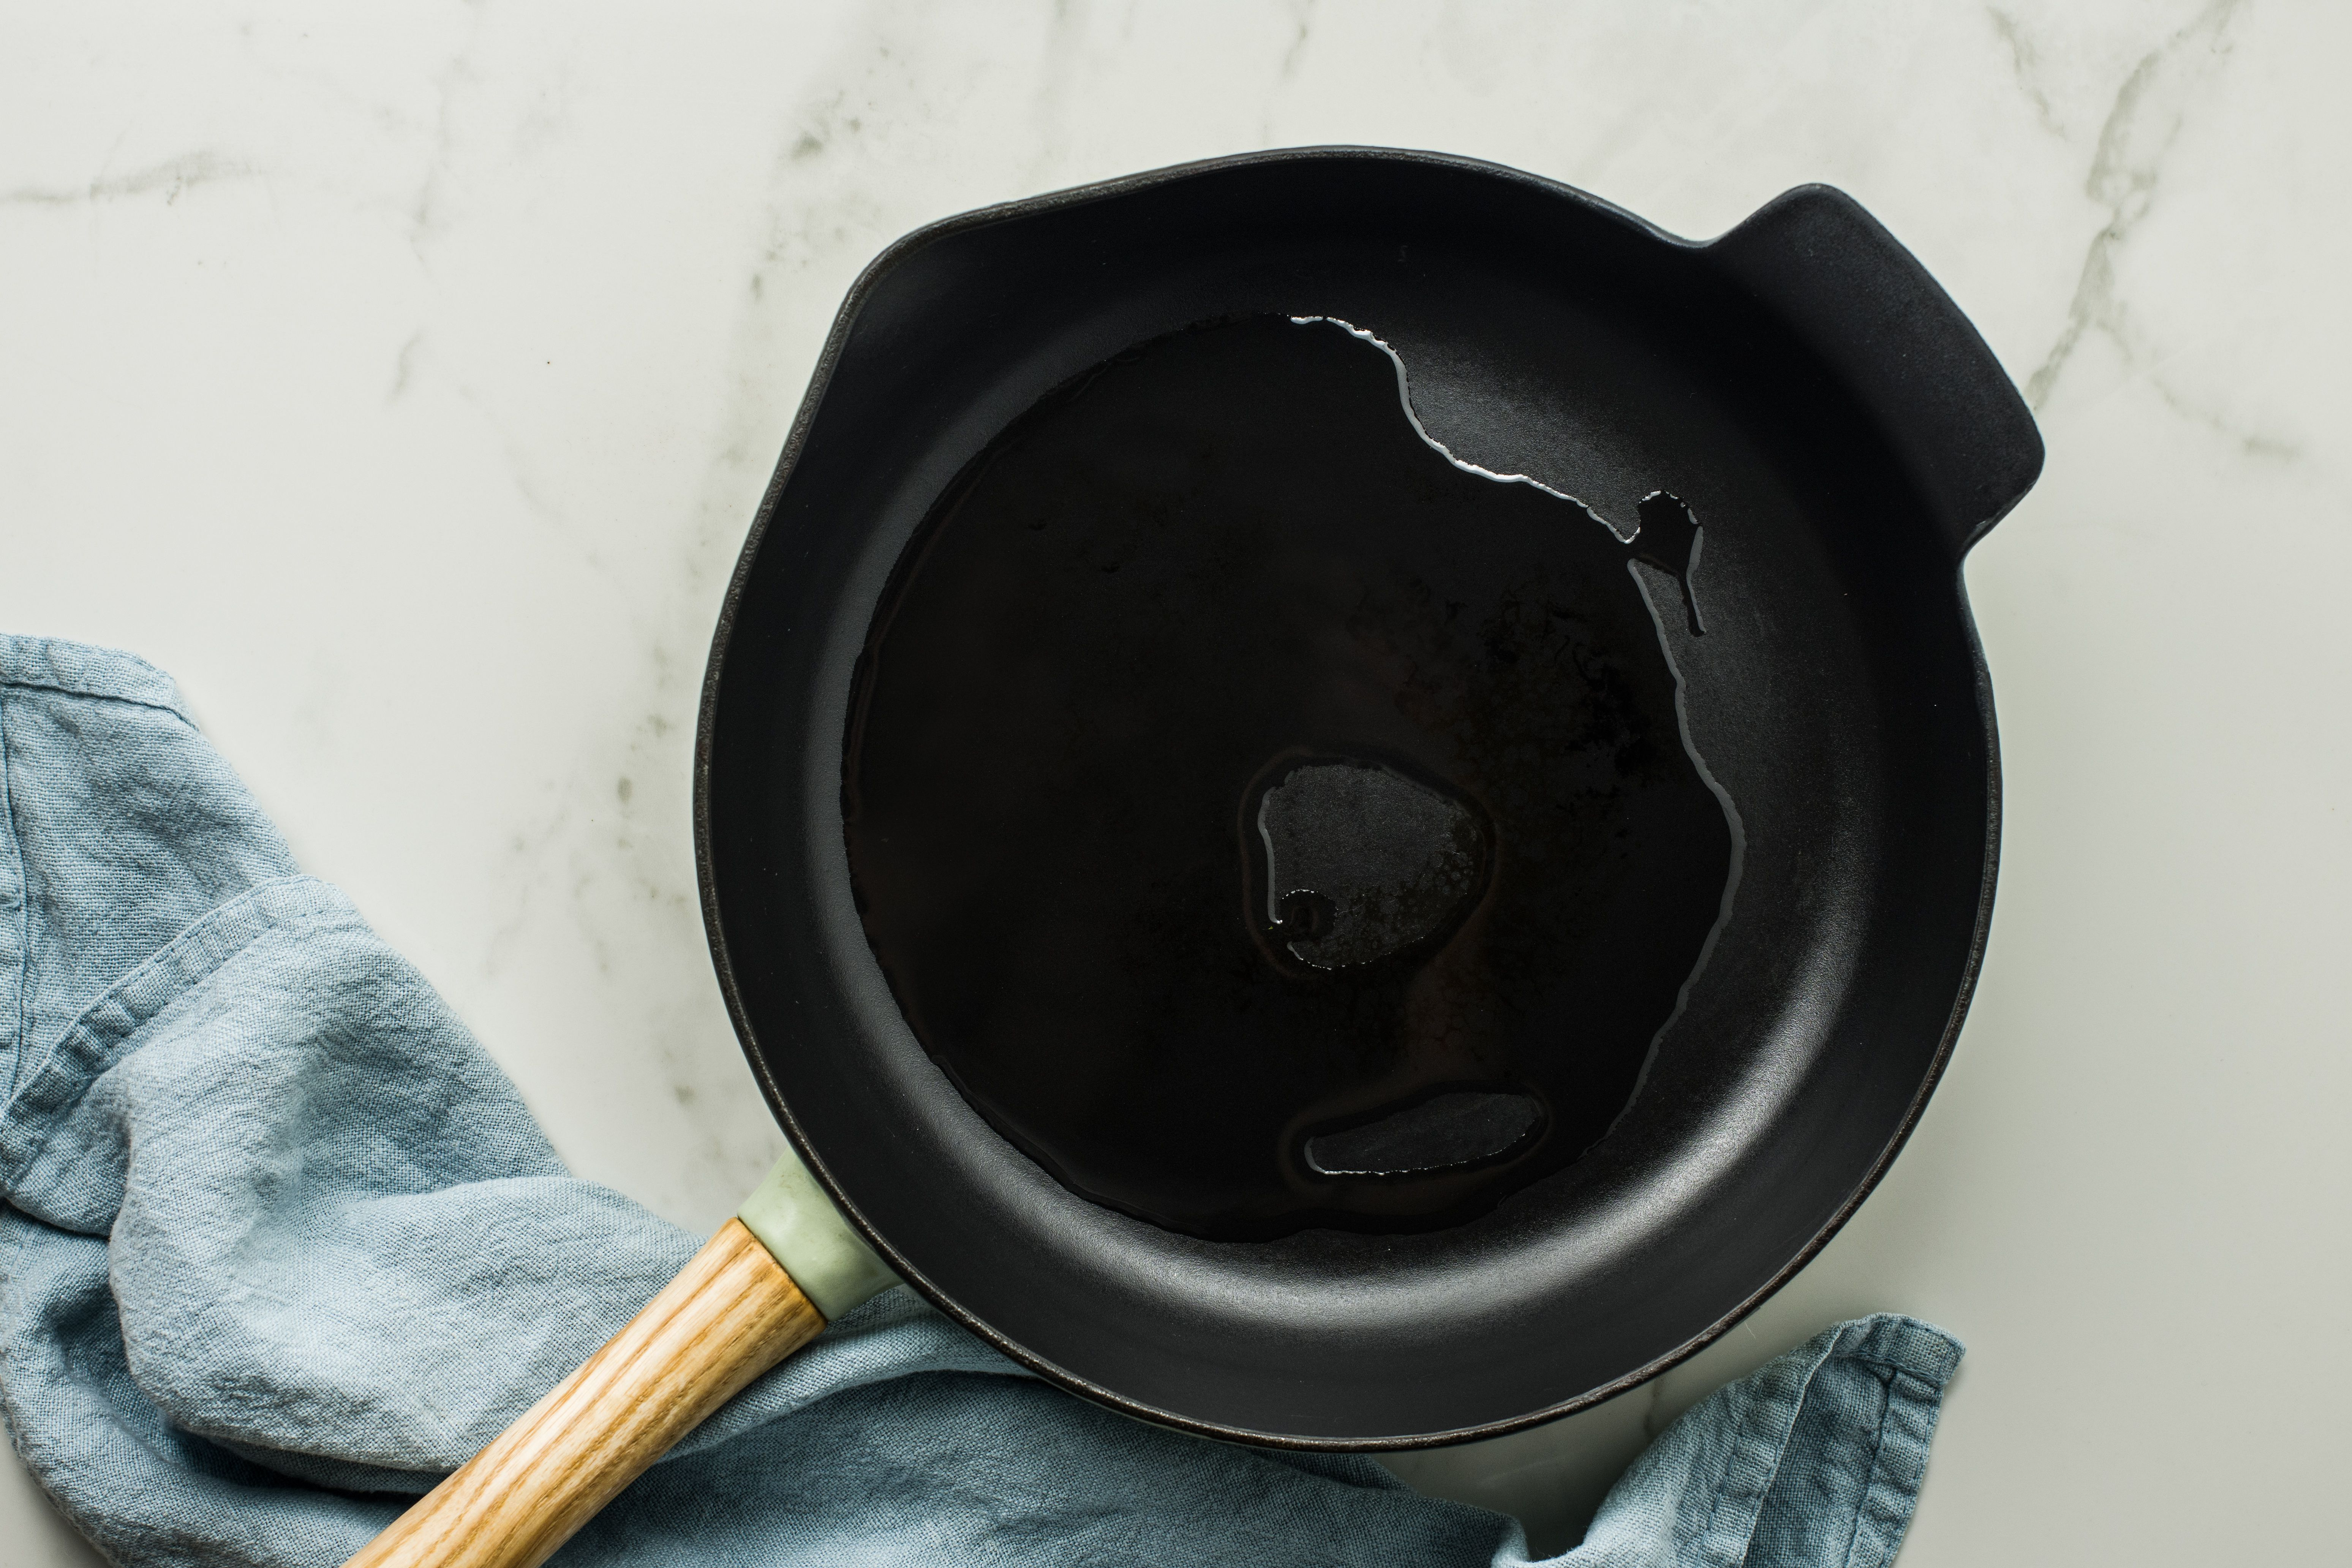 Oil heating in a cast iron skillet